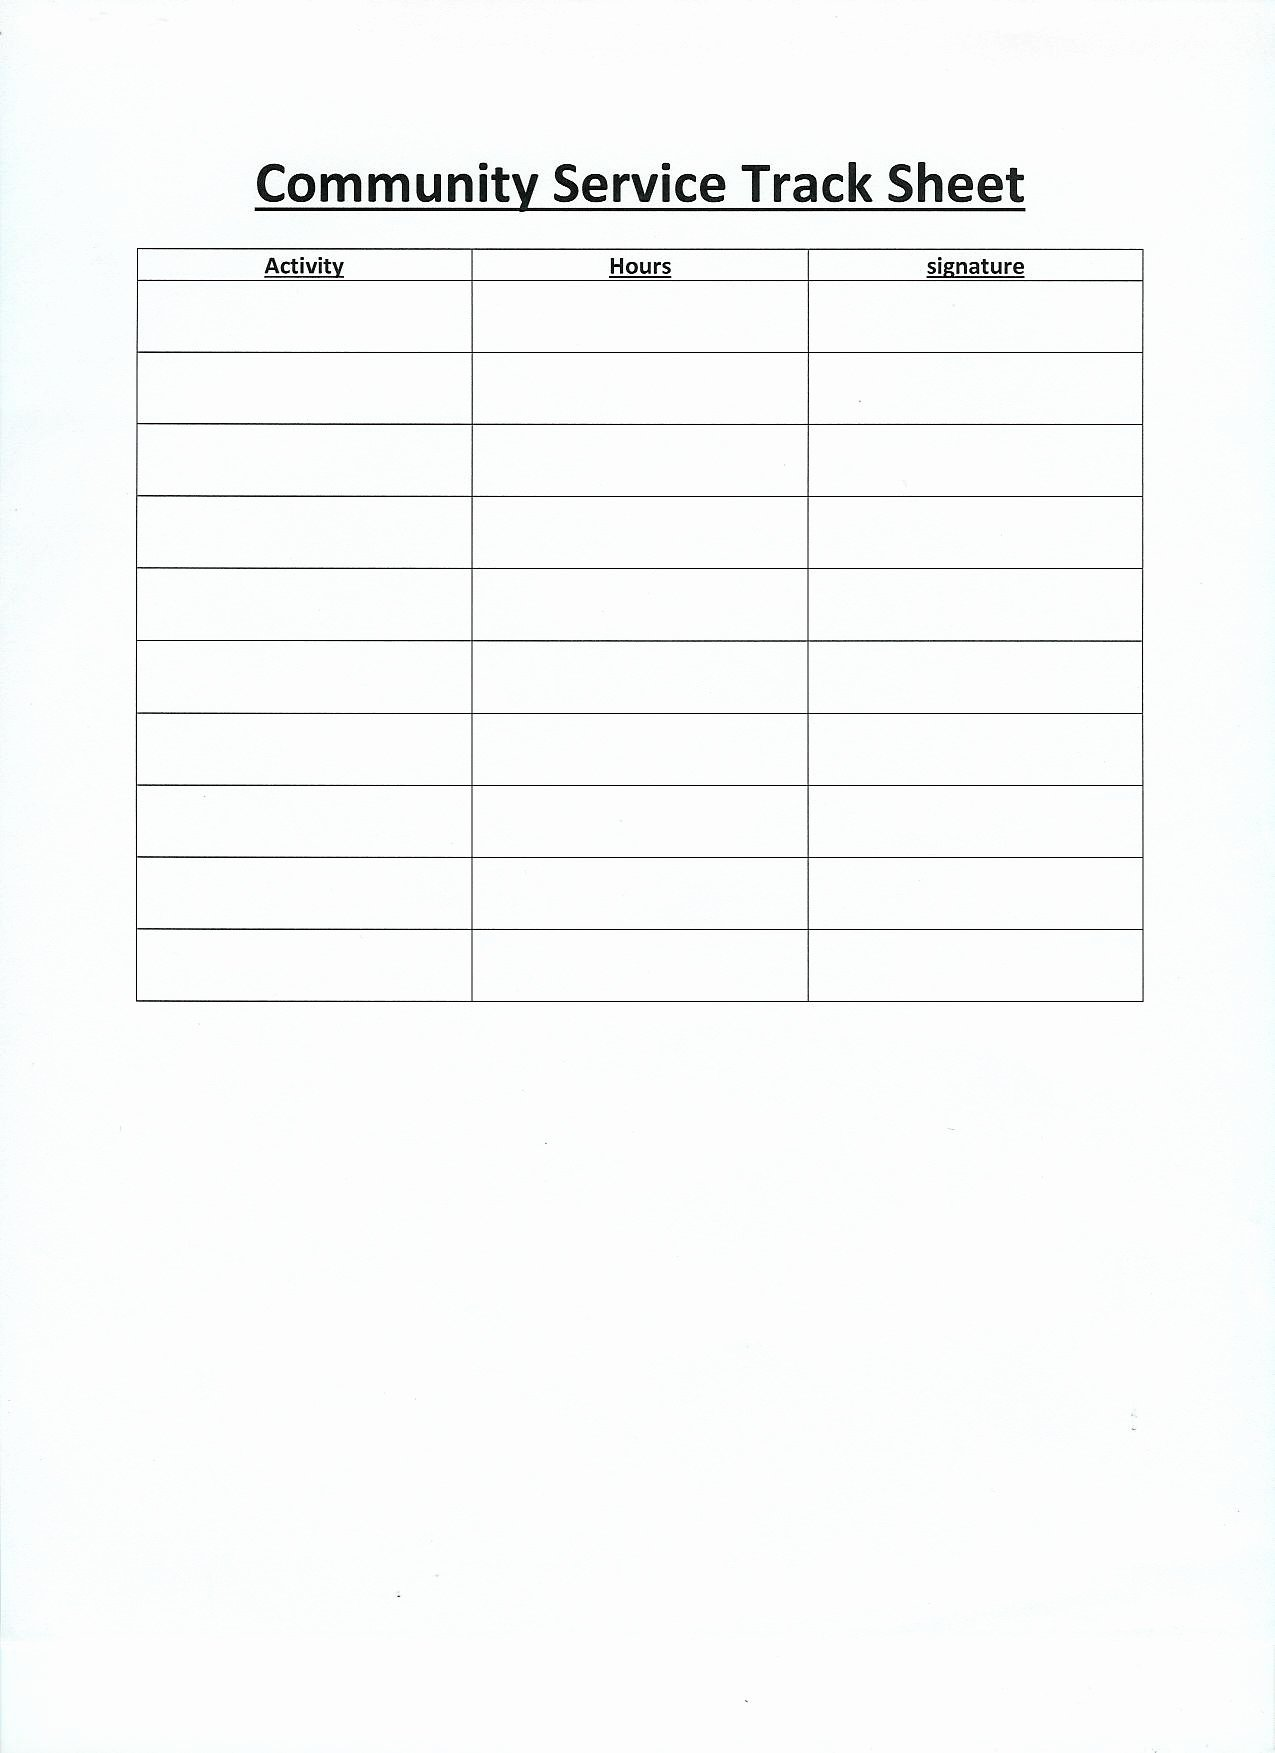 Community Service Timesheet Template Beautiful Free Printable Volunteer Log Sheets